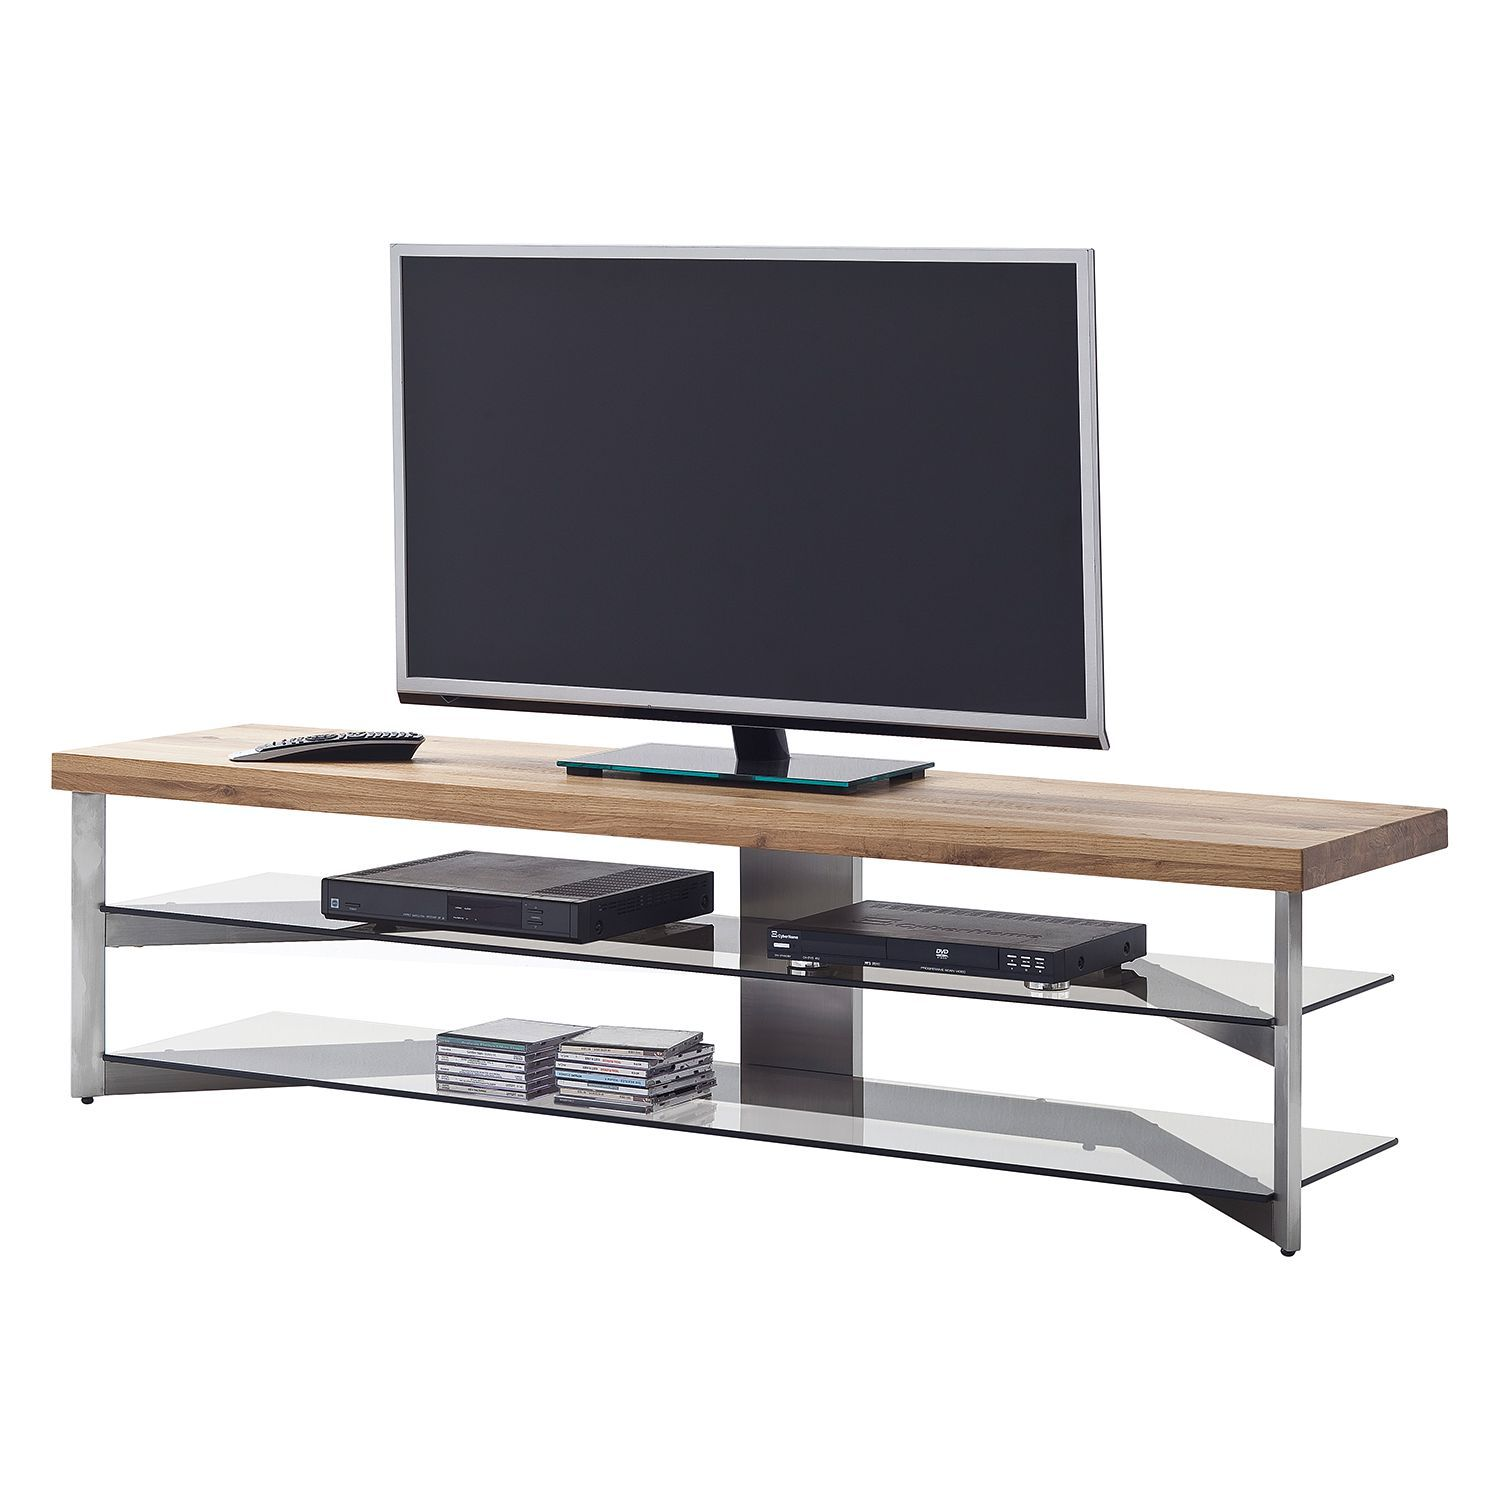 Tv Lowboard Baelo Eiche Massiv Metall Roomscape Jetzt  # Meuble Tv Gris Beton